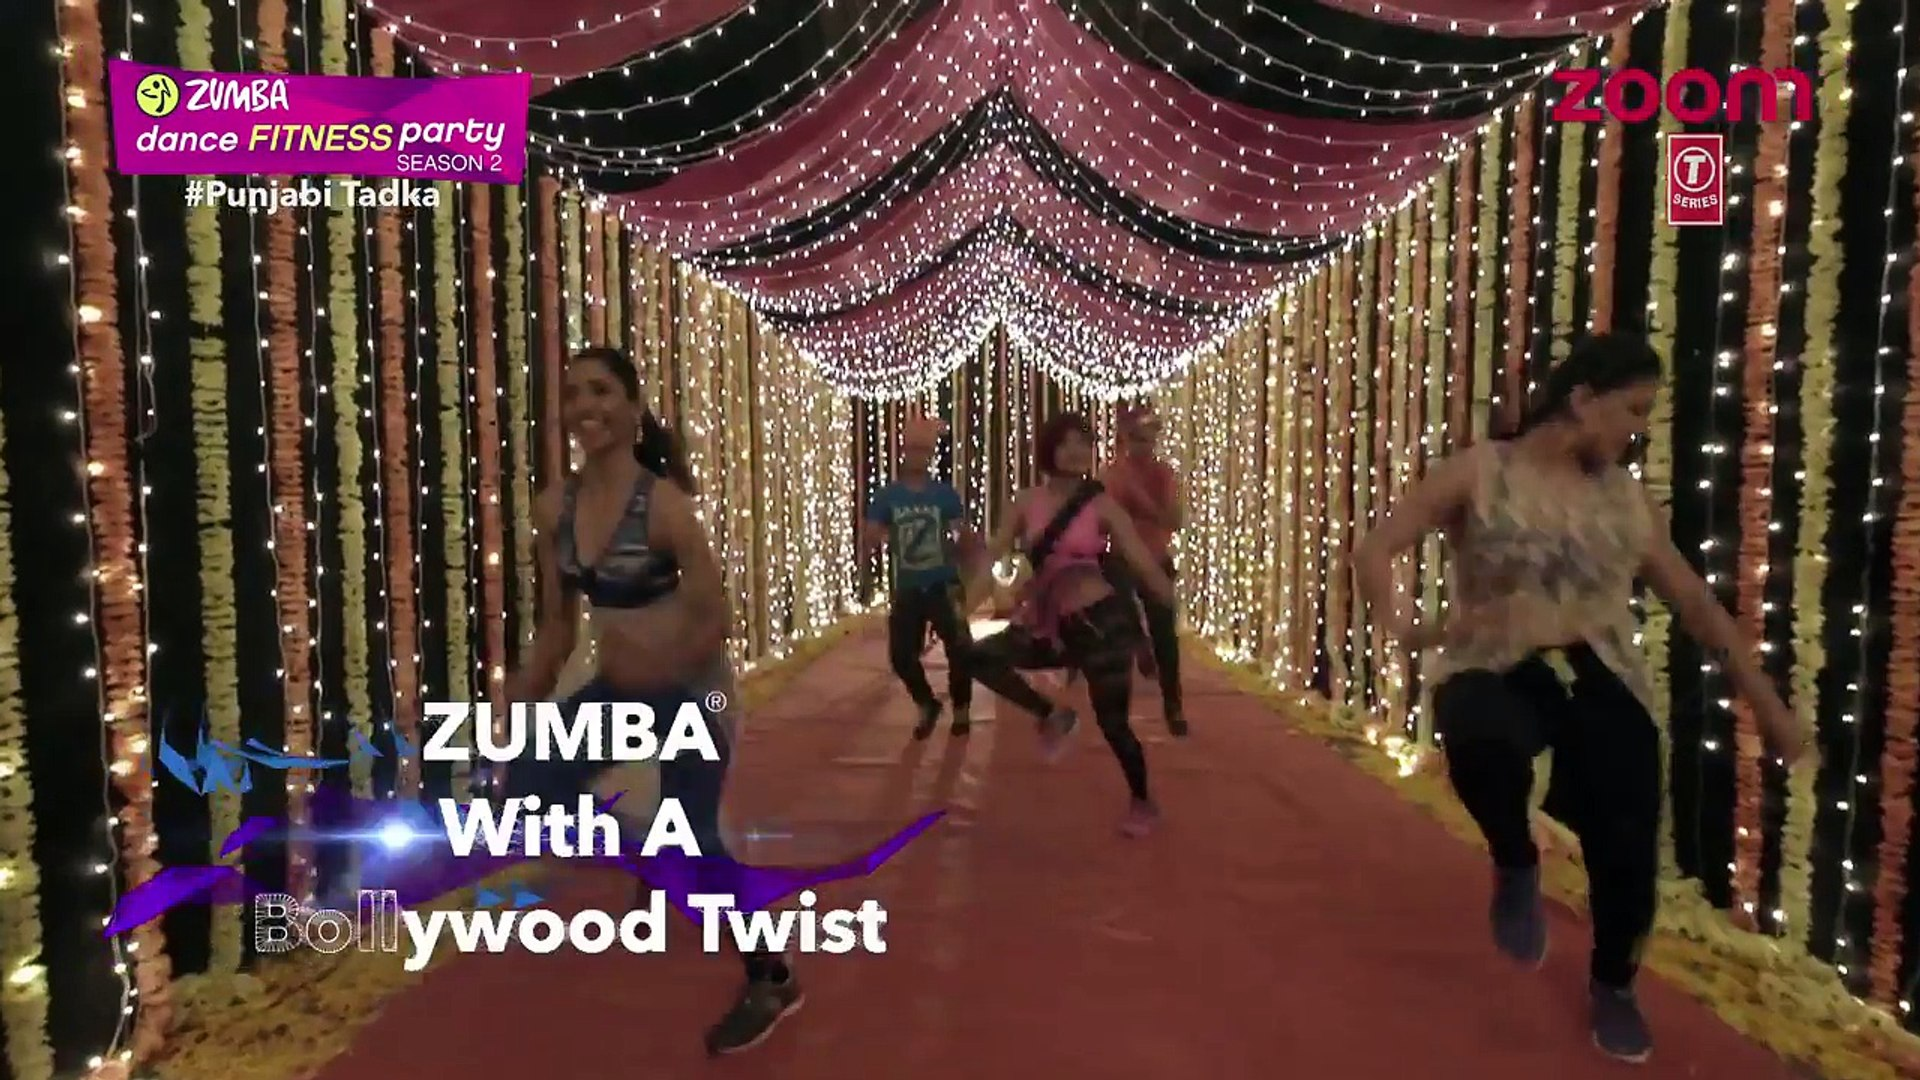 Zoom Zumba Dance Fitness Party Season 2 Ep 04 Divya Khosla Kumar Pallavi Sharda Sucheta Pal Video Dailymotion Below, you will find a list of my personal favorite songs to i think that all of these songs are really great and a lot of fun and make you feel healthy and sexy! zoom zumba dance fitness party season 2 ep 04 divya khosla kumar pallavi sharda sucheta pal